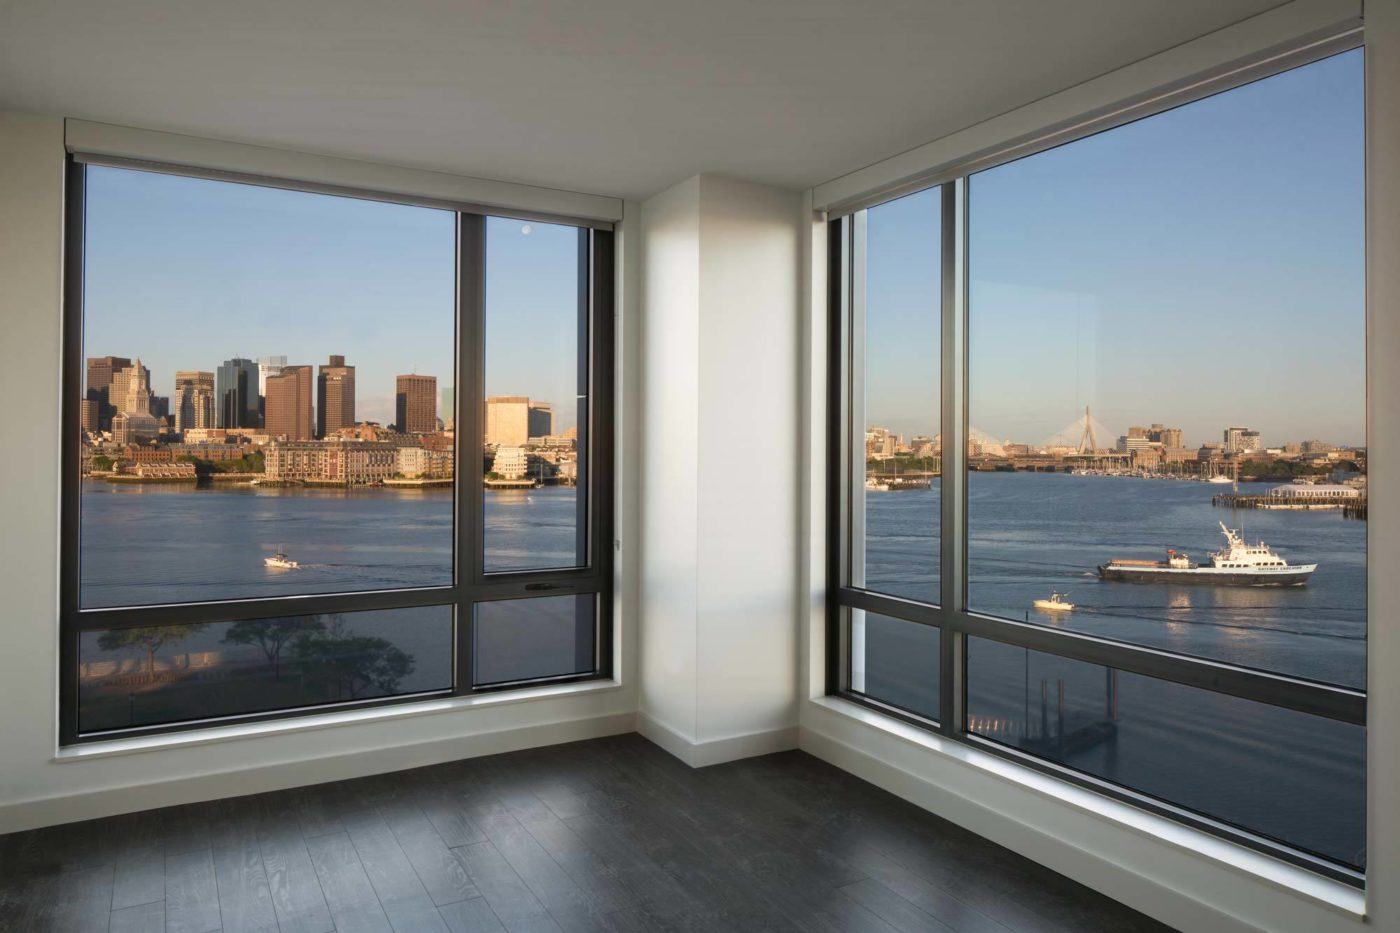 Eddy East Boston model unit with views of water